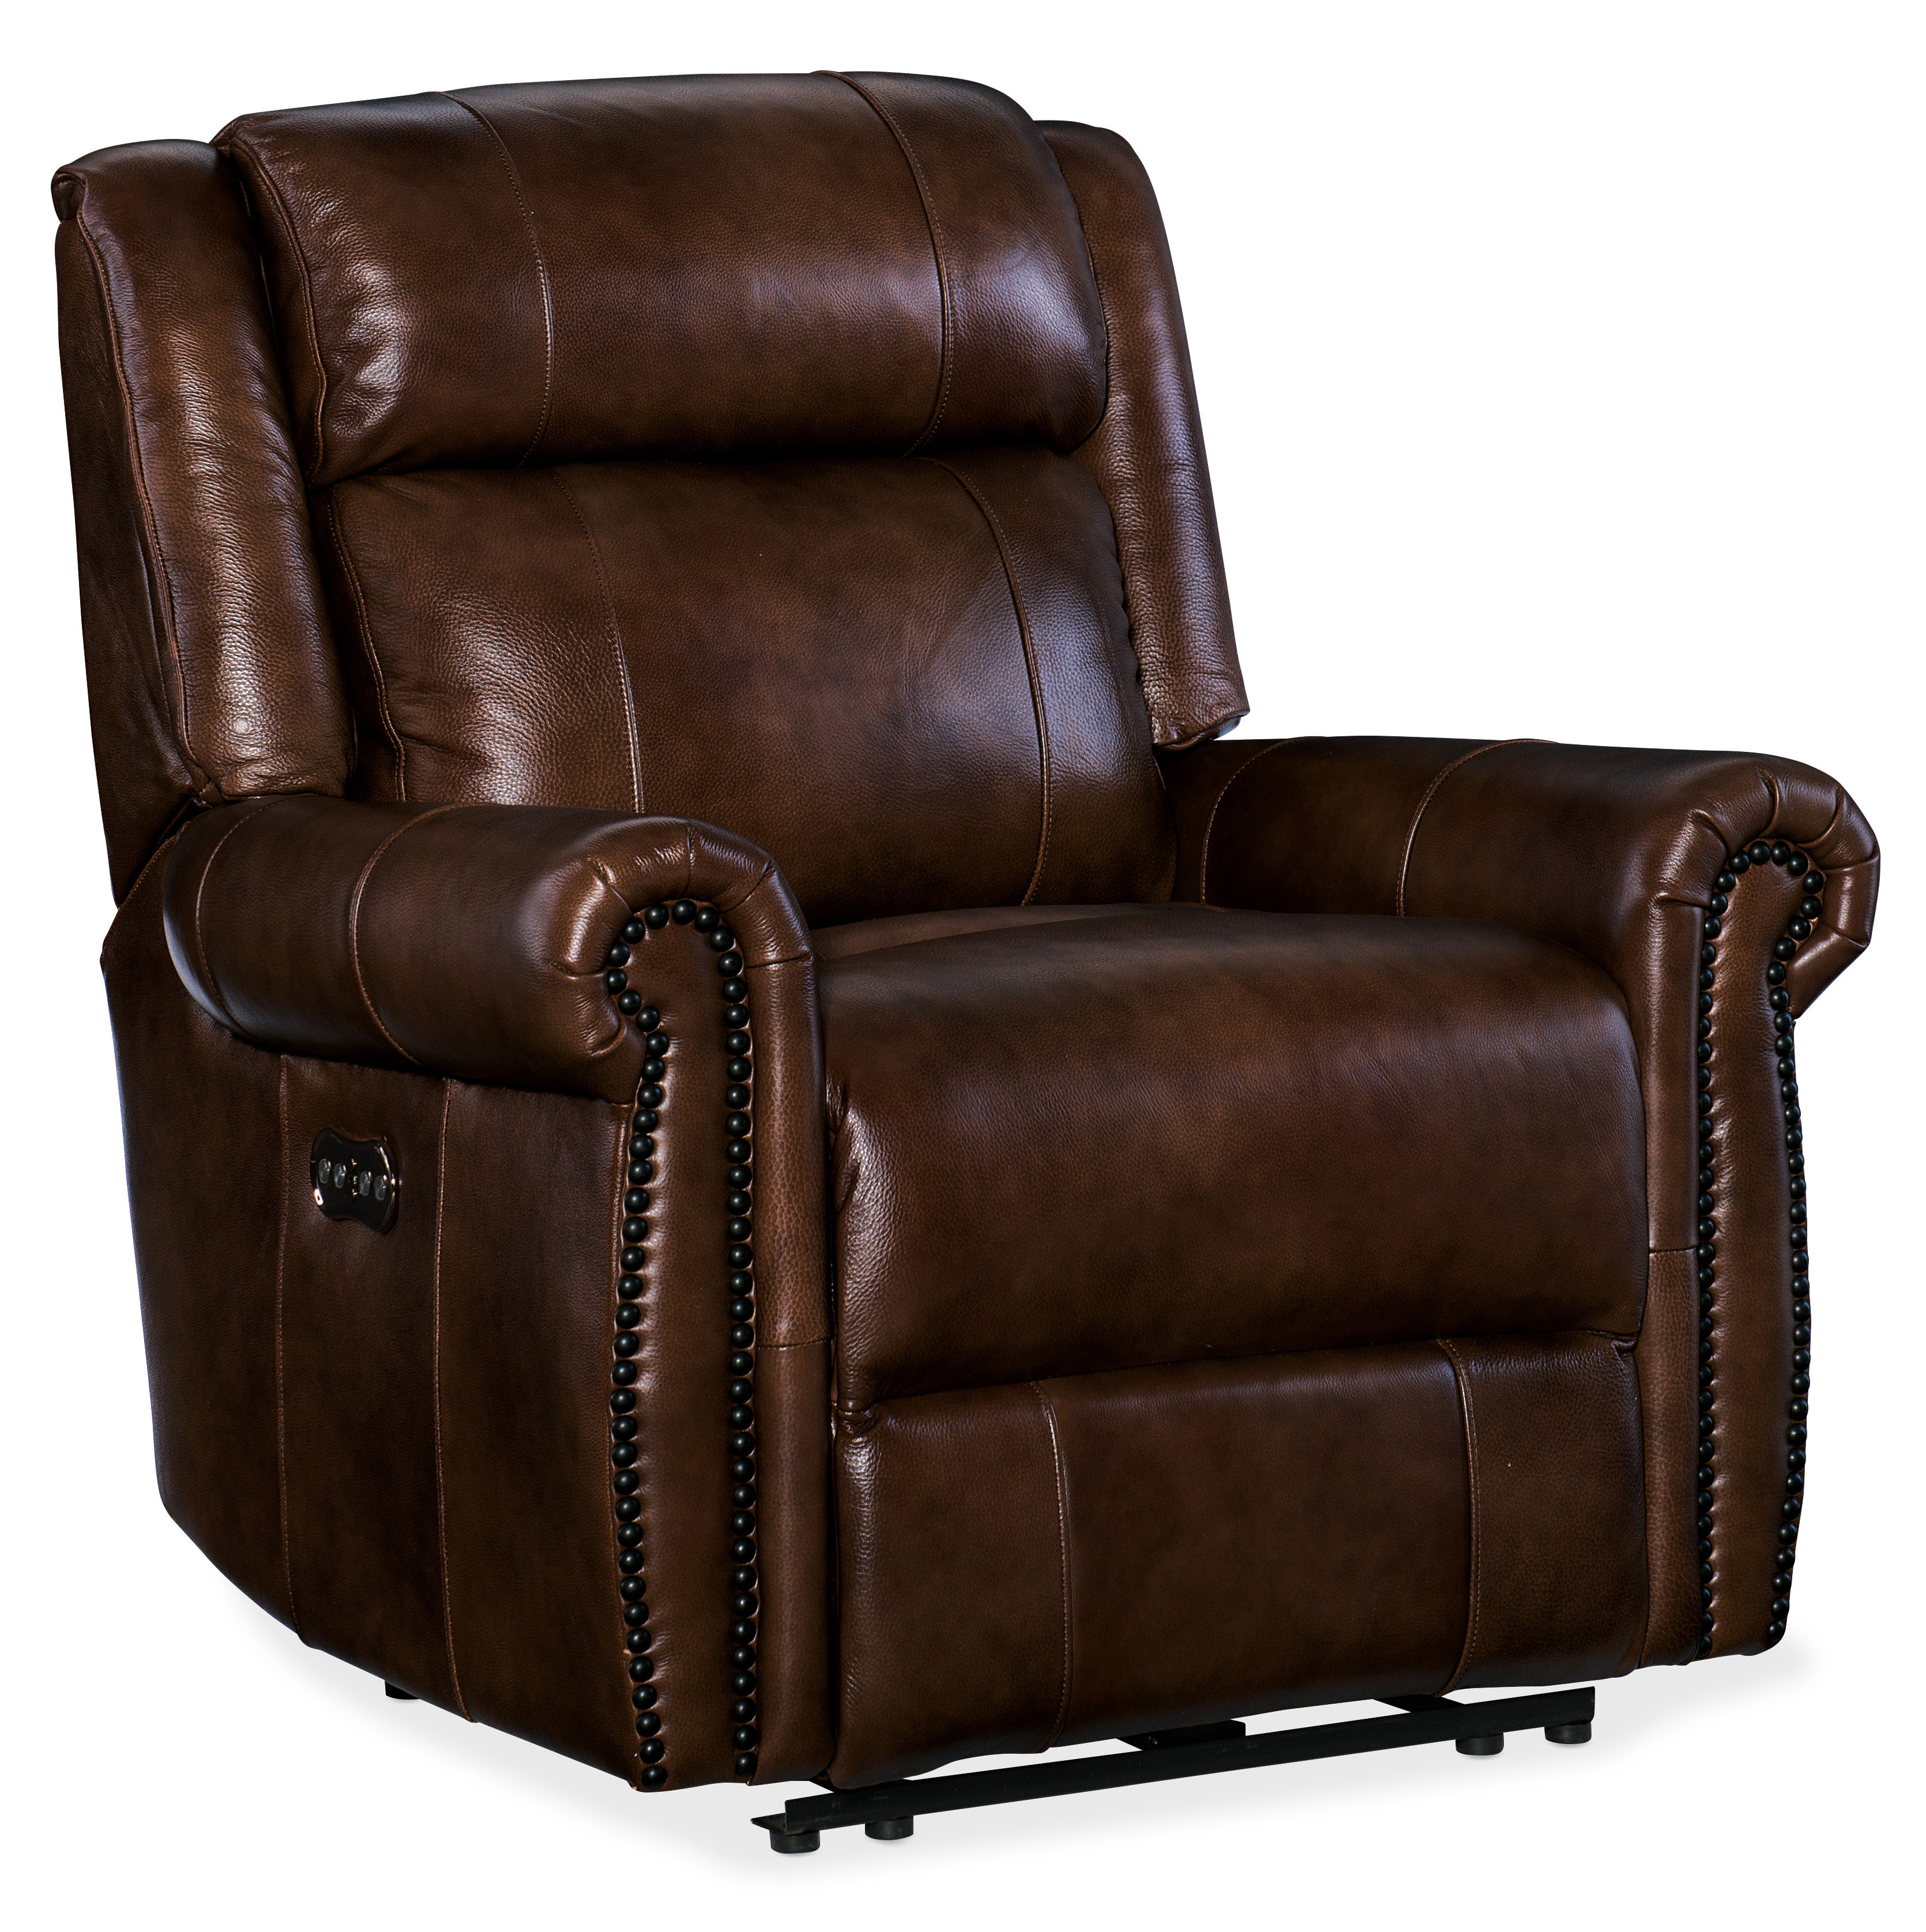 Hooker Furniture Esme Leather Power Recliner with Power Headrest | Wayfair